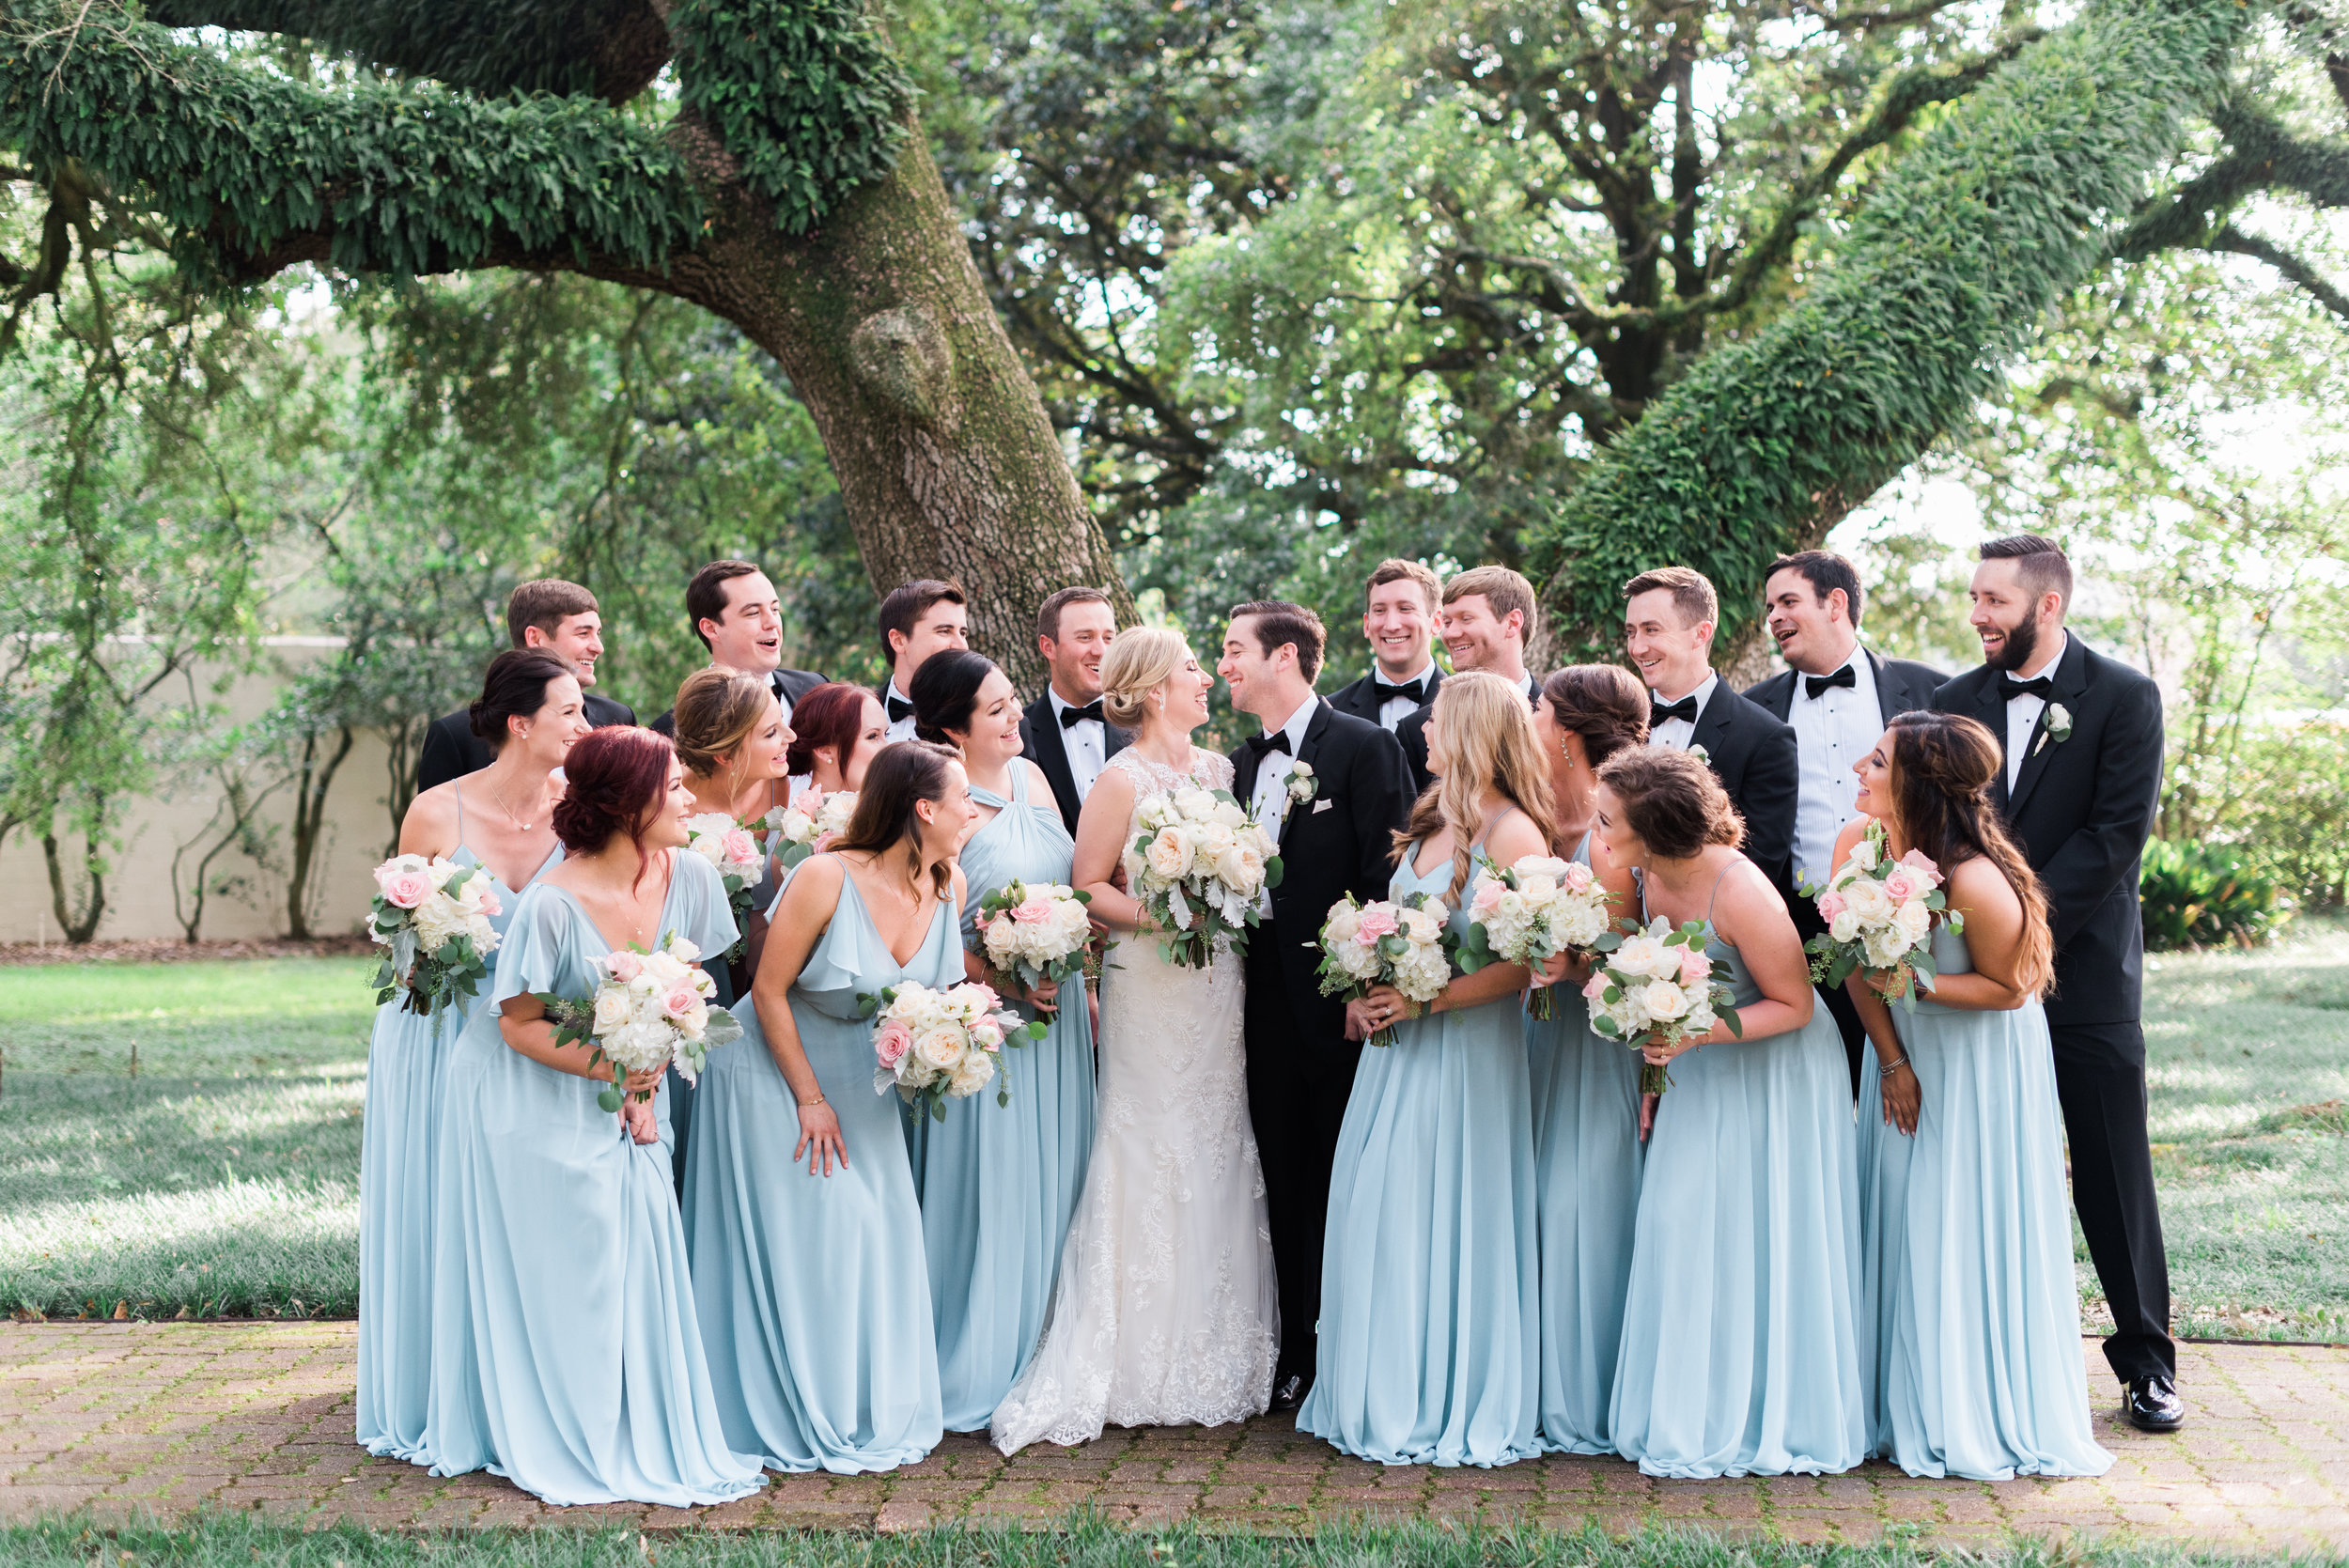 Southern Fete, Southern Wedding, Bridal Party, Sarah Beth Photography, Flowers by Rodney, Baby Blue Bridesmaid dresses